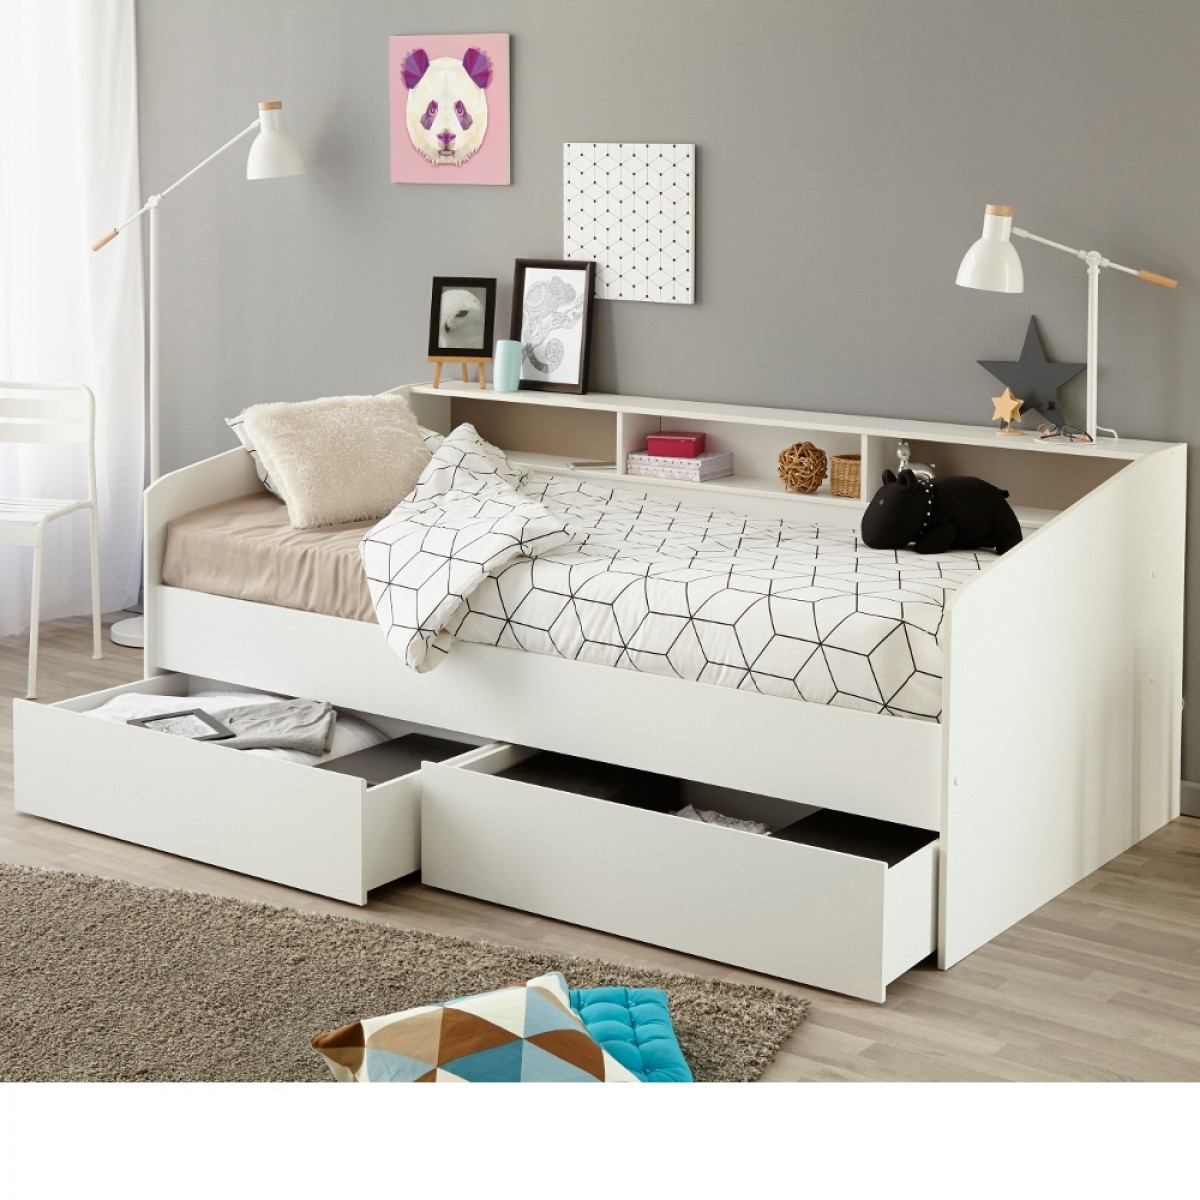 Sleep White Wooden Day Bed